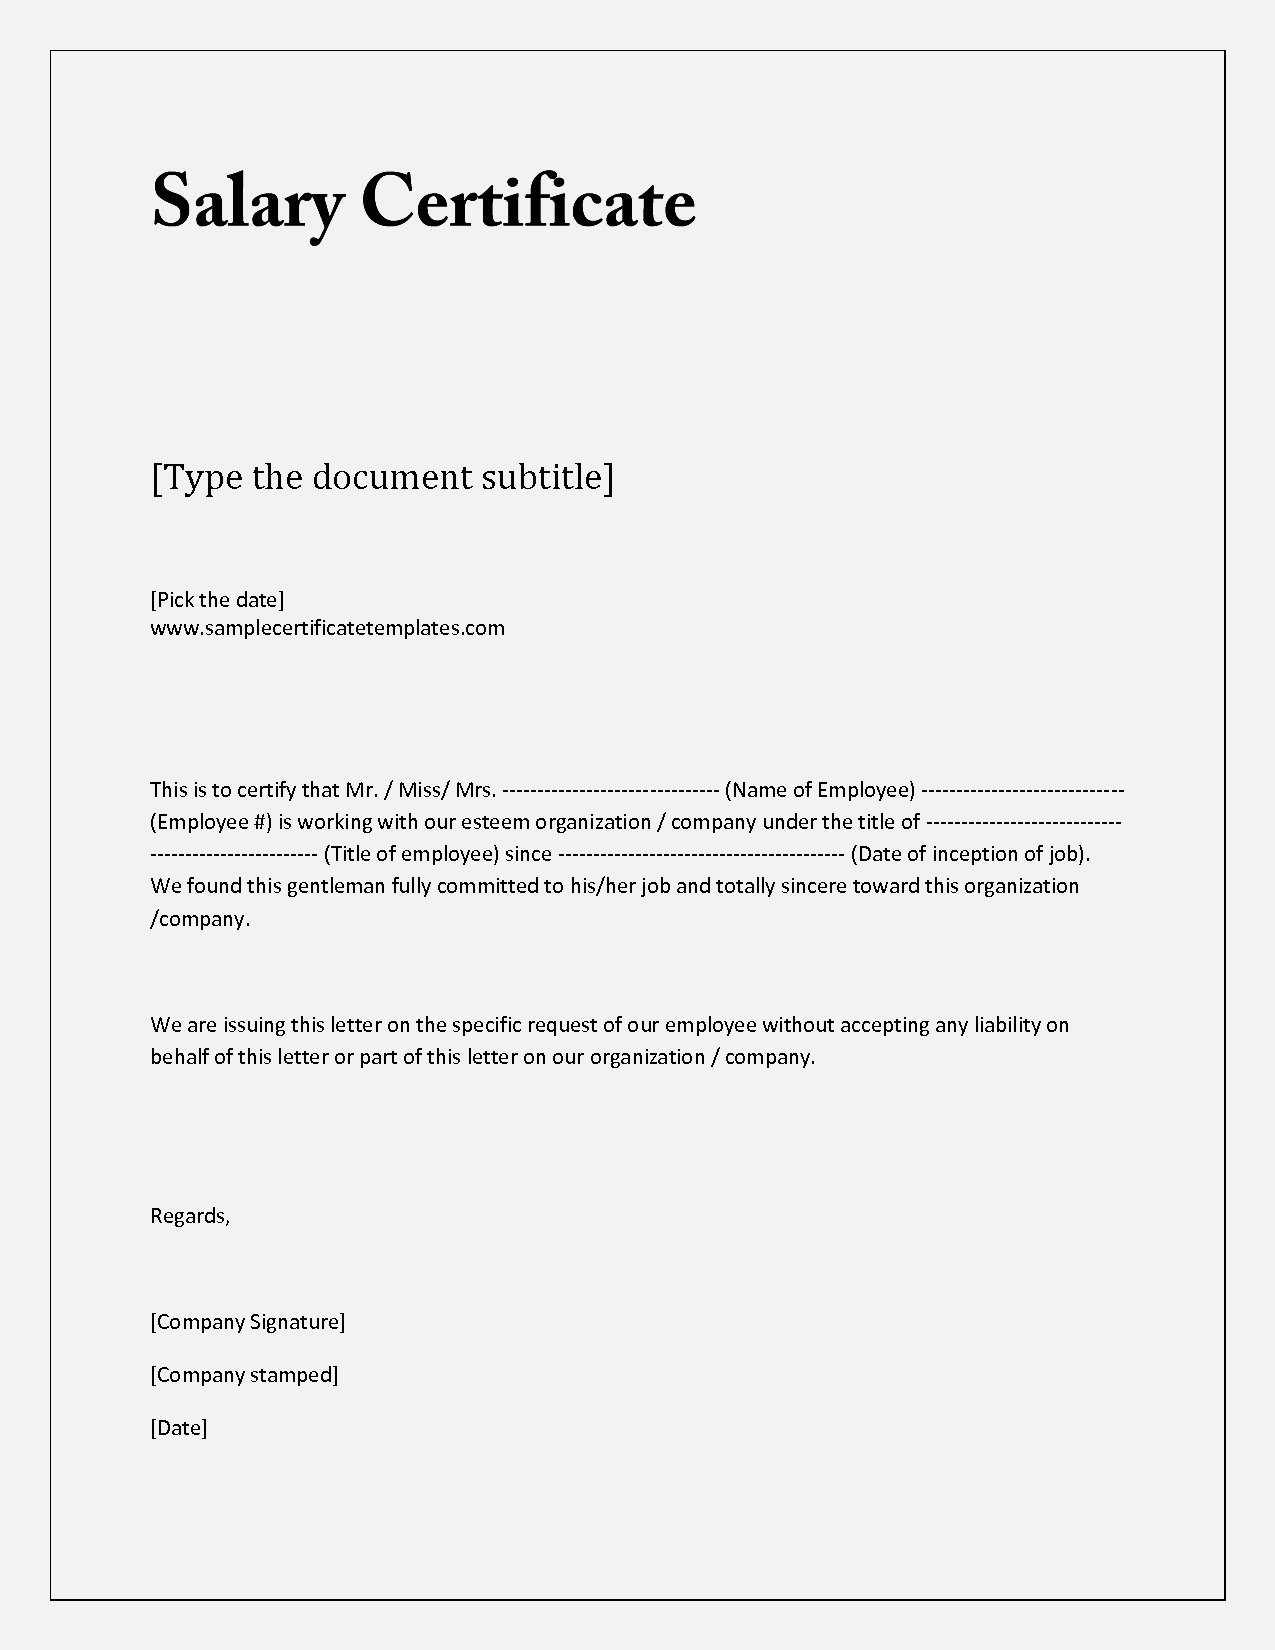 Letter Salary Certificate Sample Income Verification Examples Experience  Expense Report Template  Examples Of Employment Verification Letters